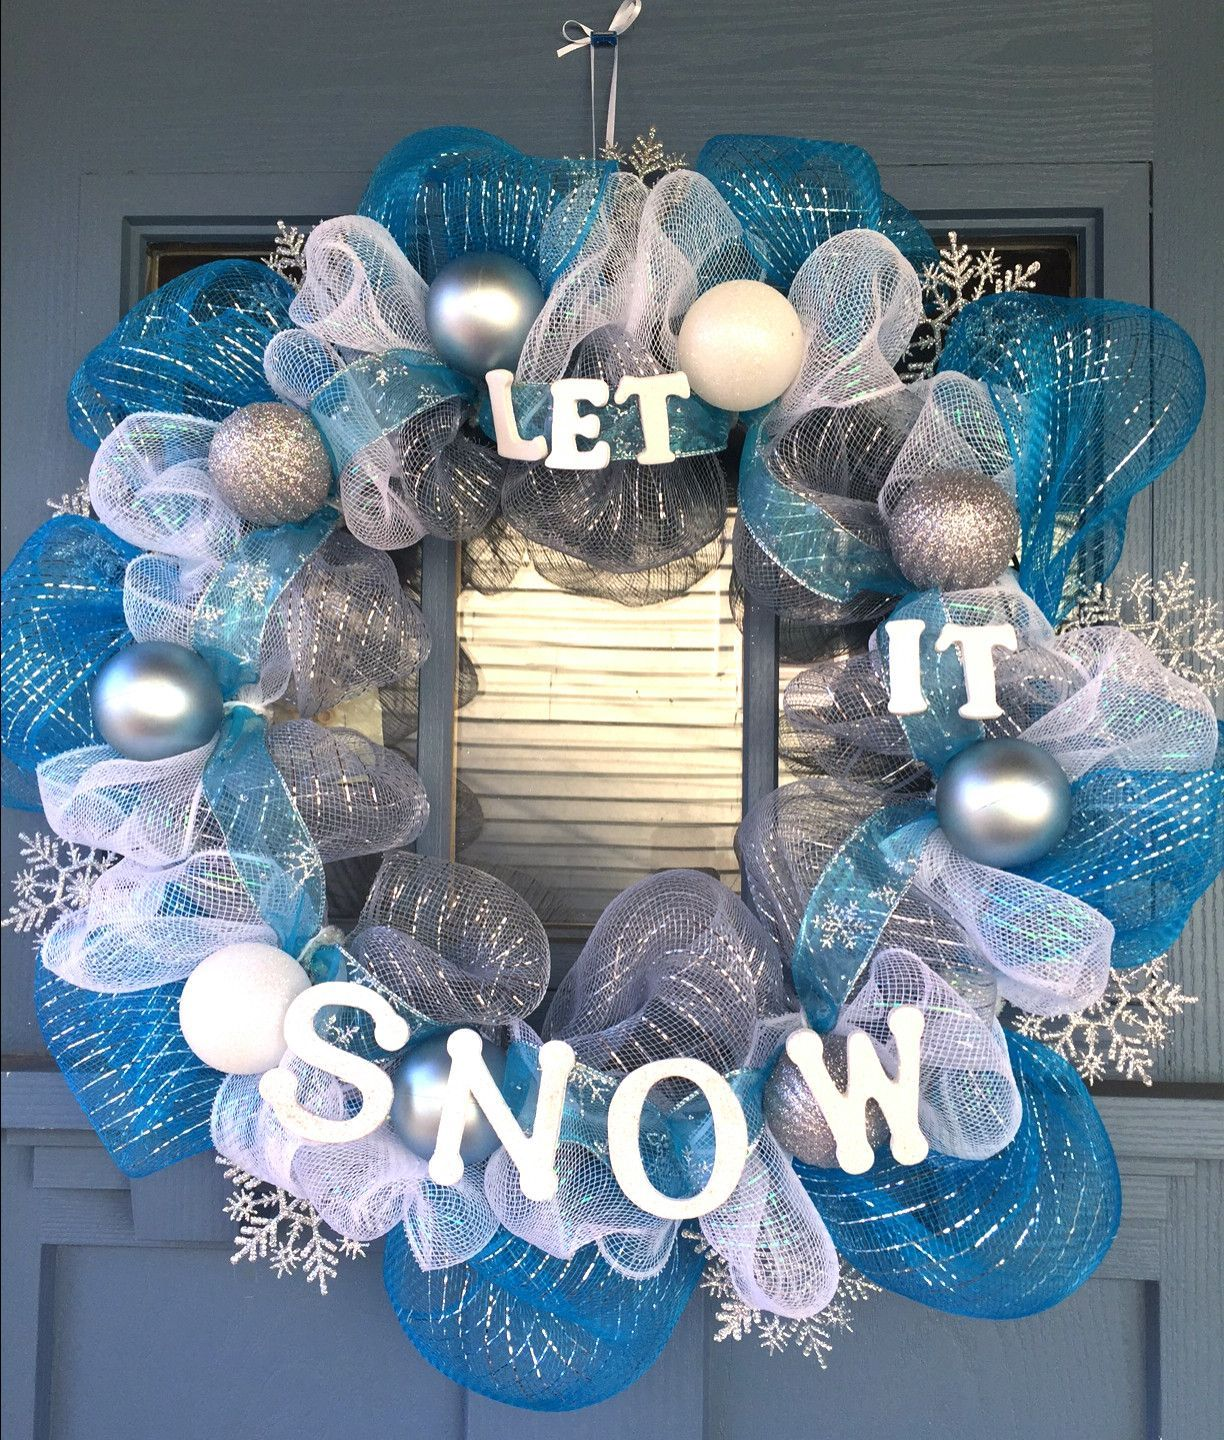 Wire wreath frame covered with silver, blue and white